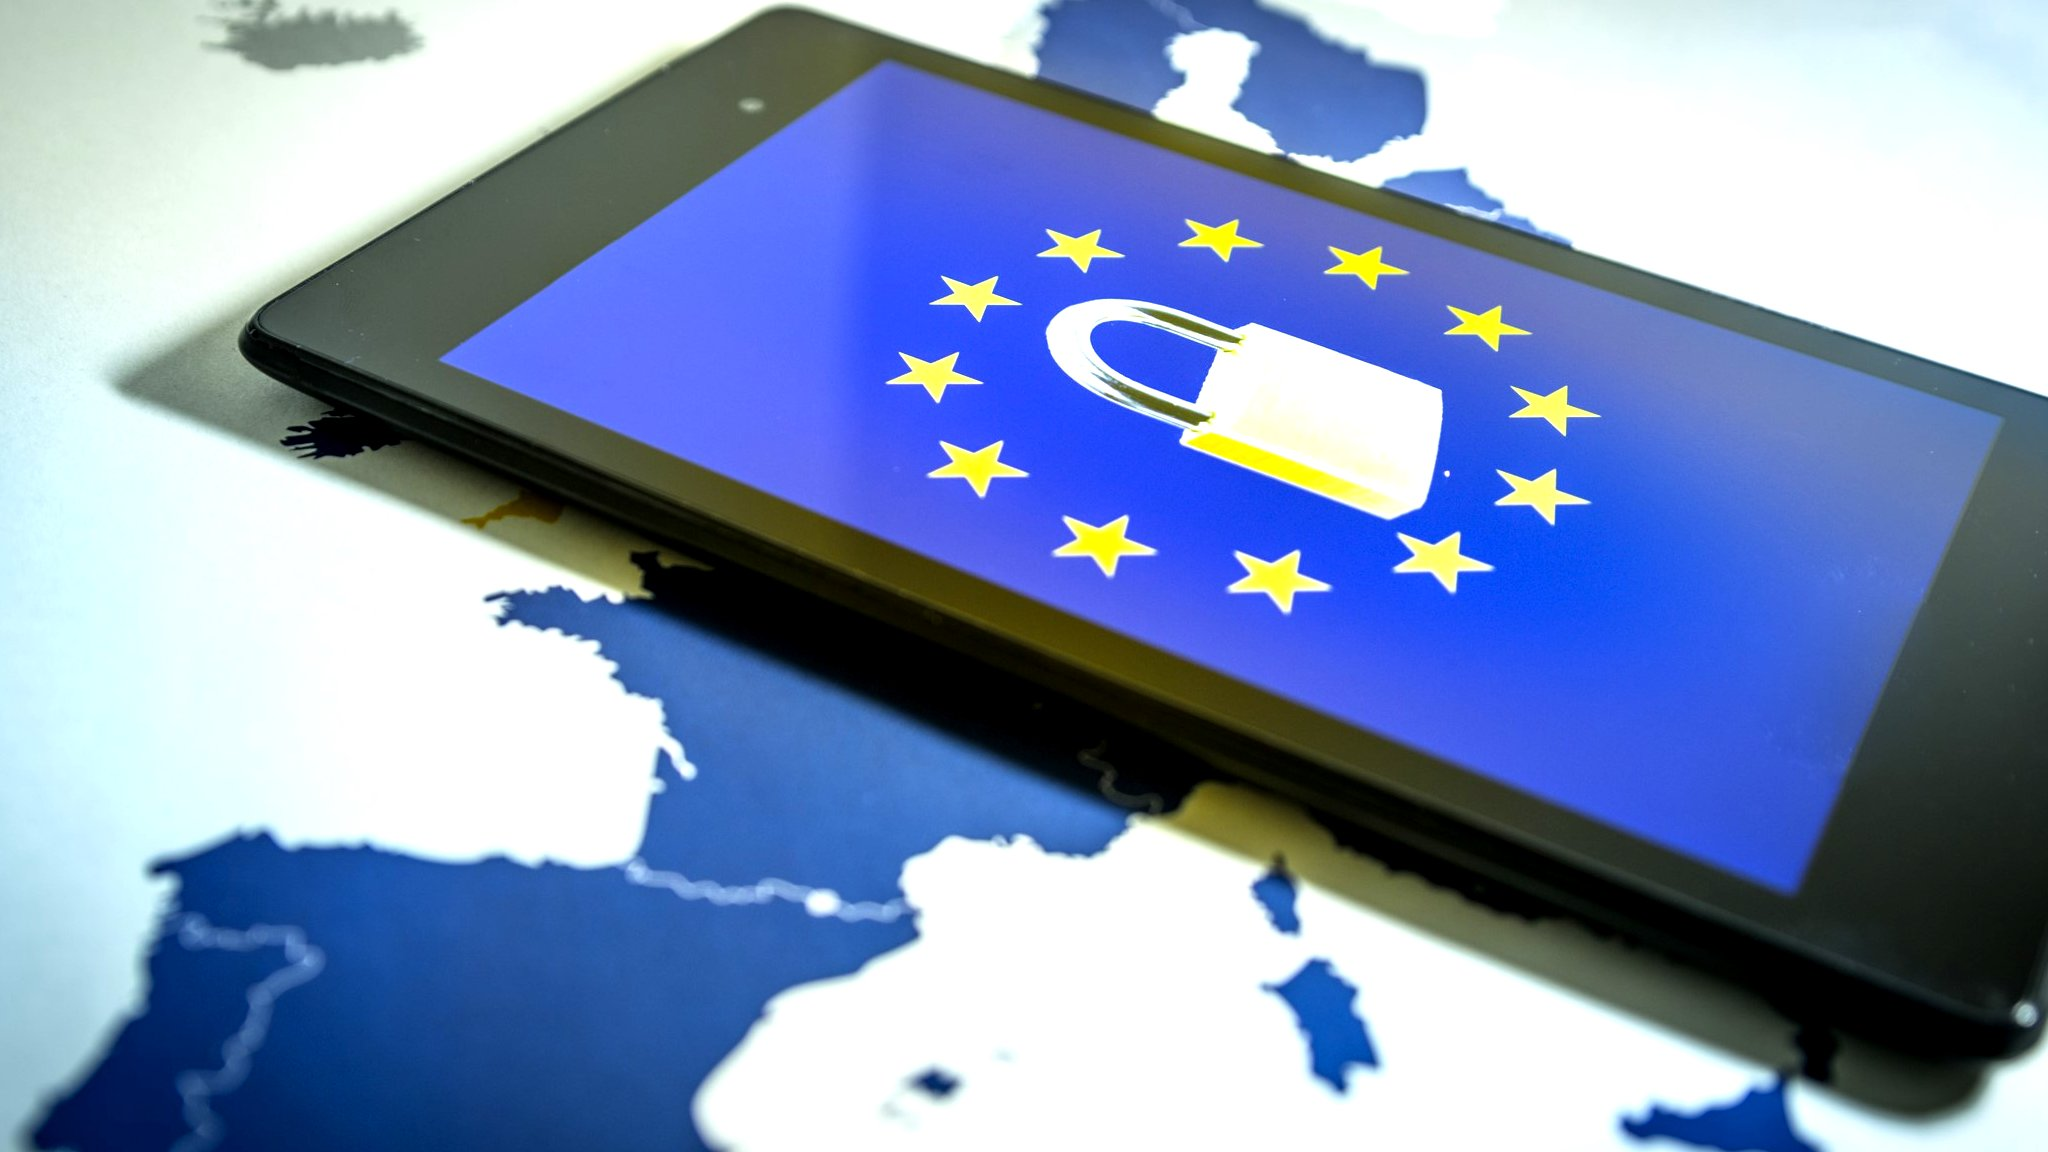 GDPR: Tech firms struggle with EU's new privacy rules